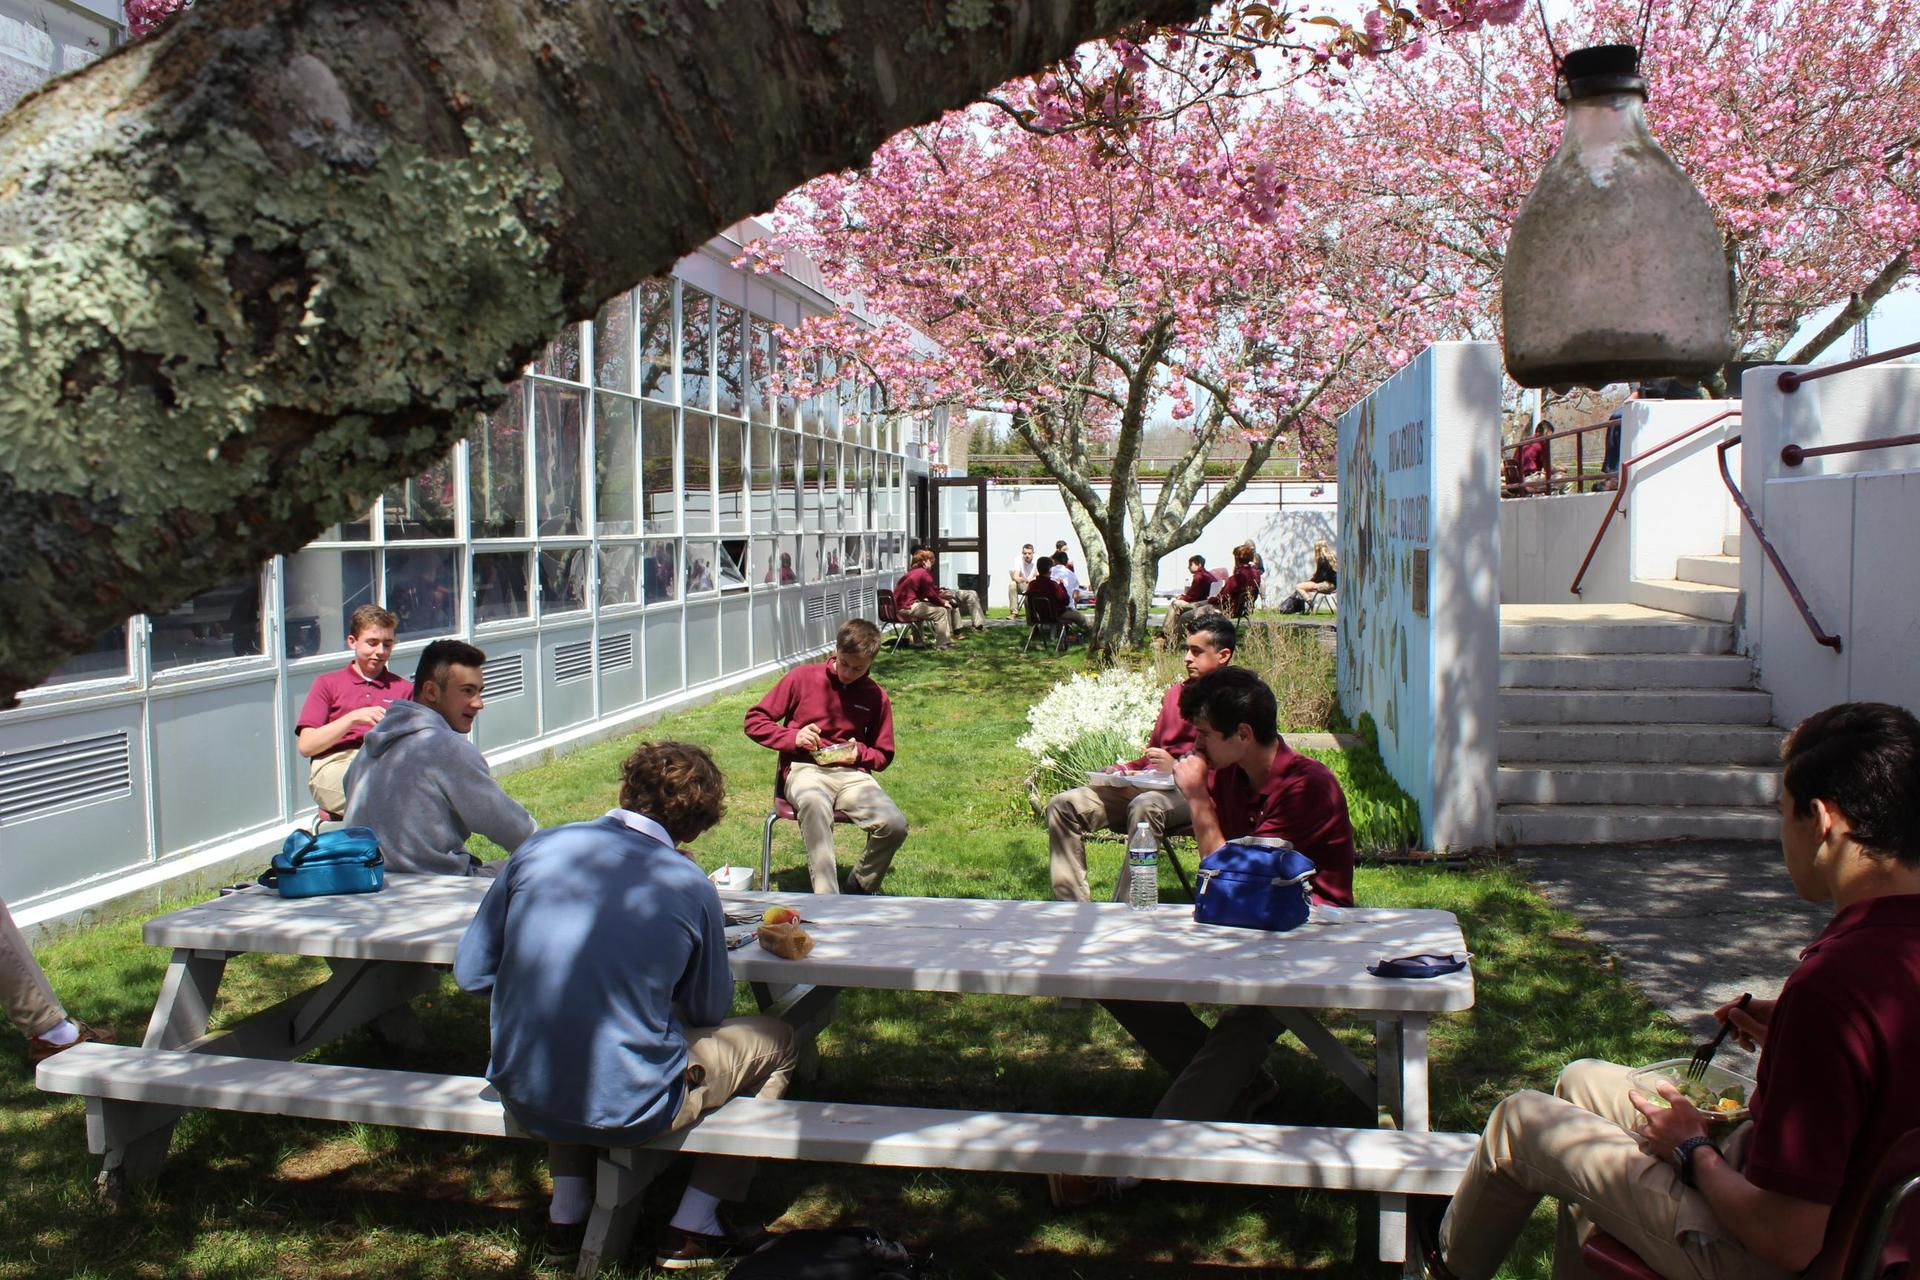 students dining outdoors under blooming trees